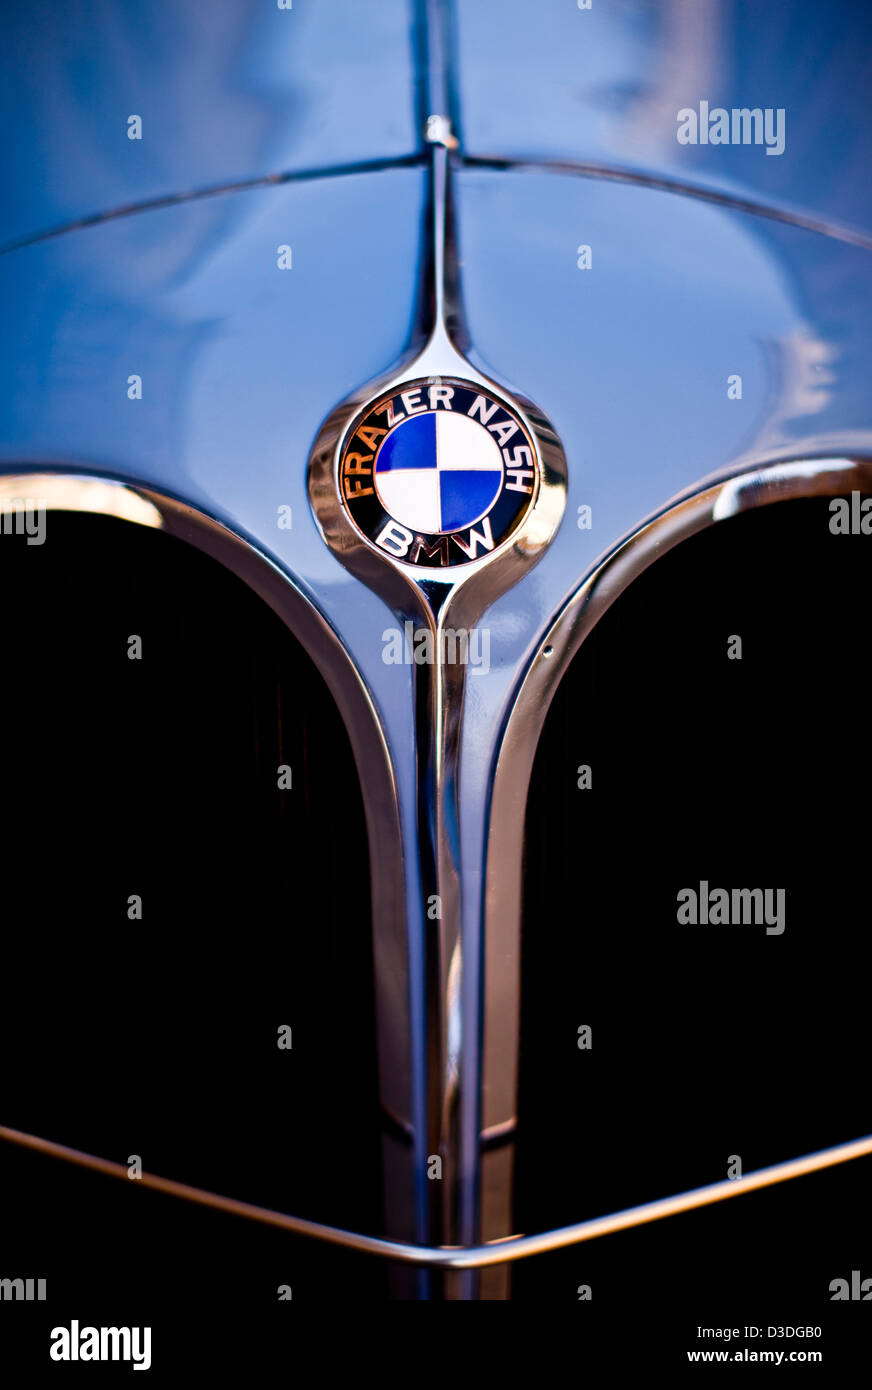 BMW, Mille Miglia car race, Italy, 2008 - Stock Image